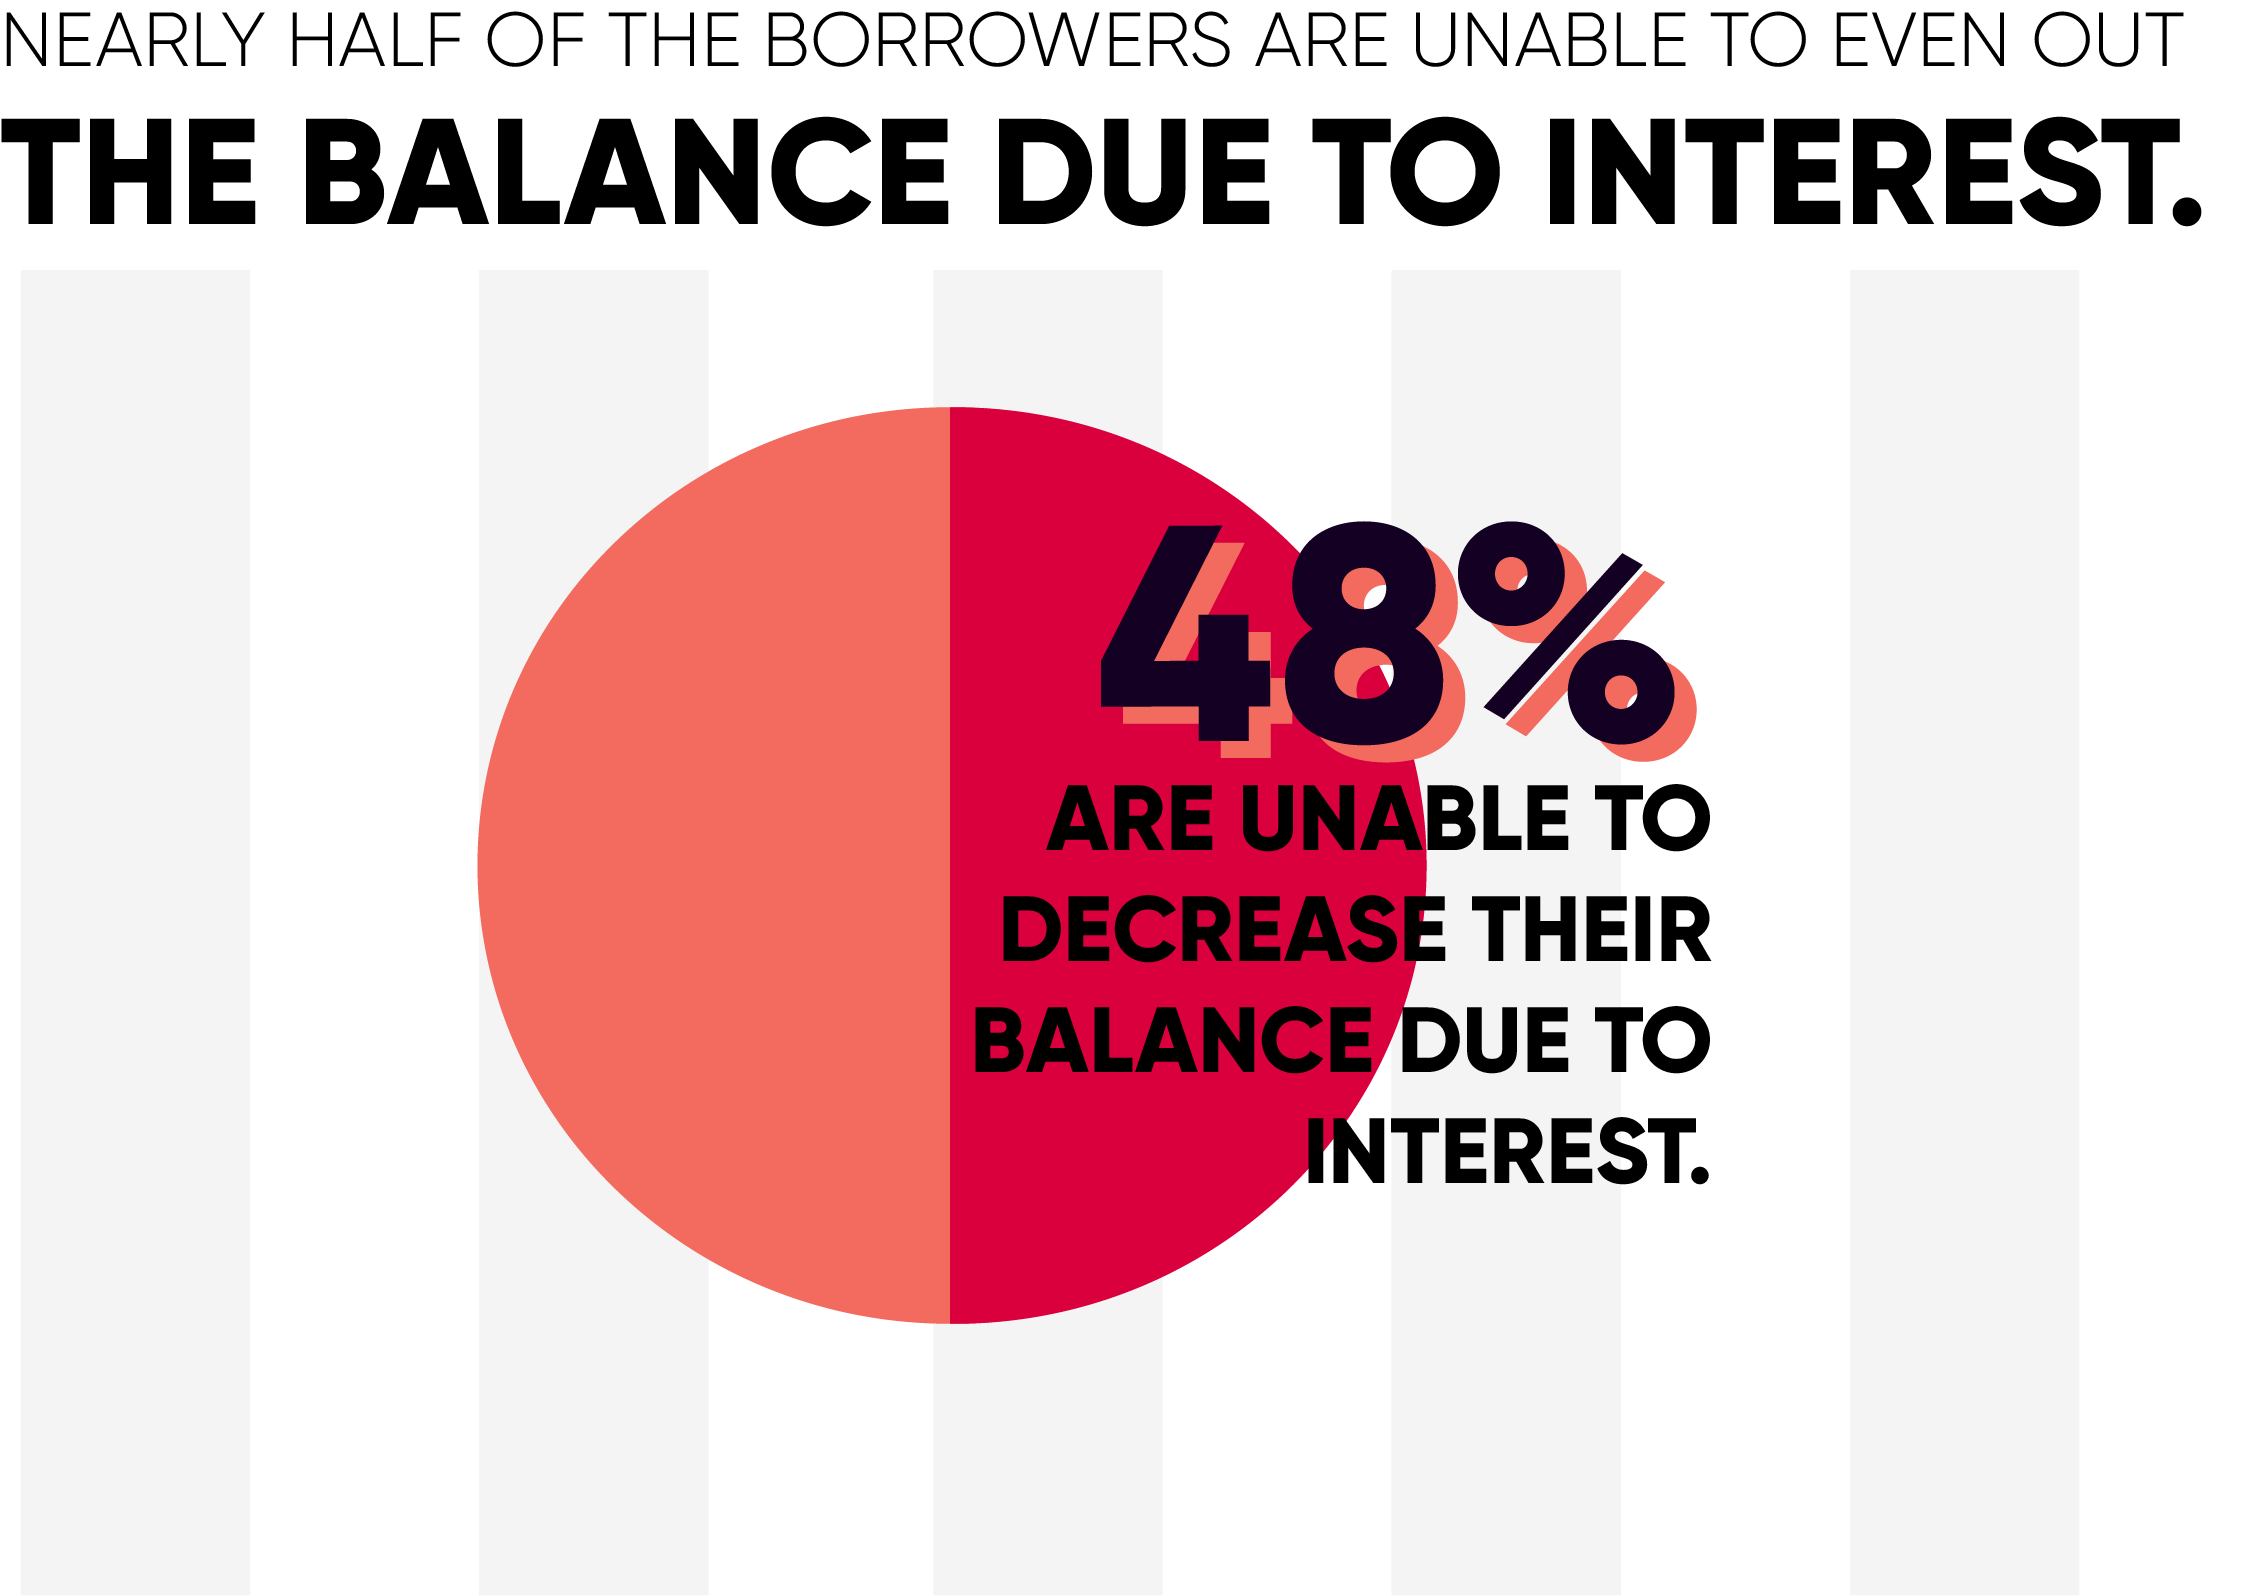 Nearly 48% of Borrowers Cannot Make a Dent in Their Balance Due to Interest